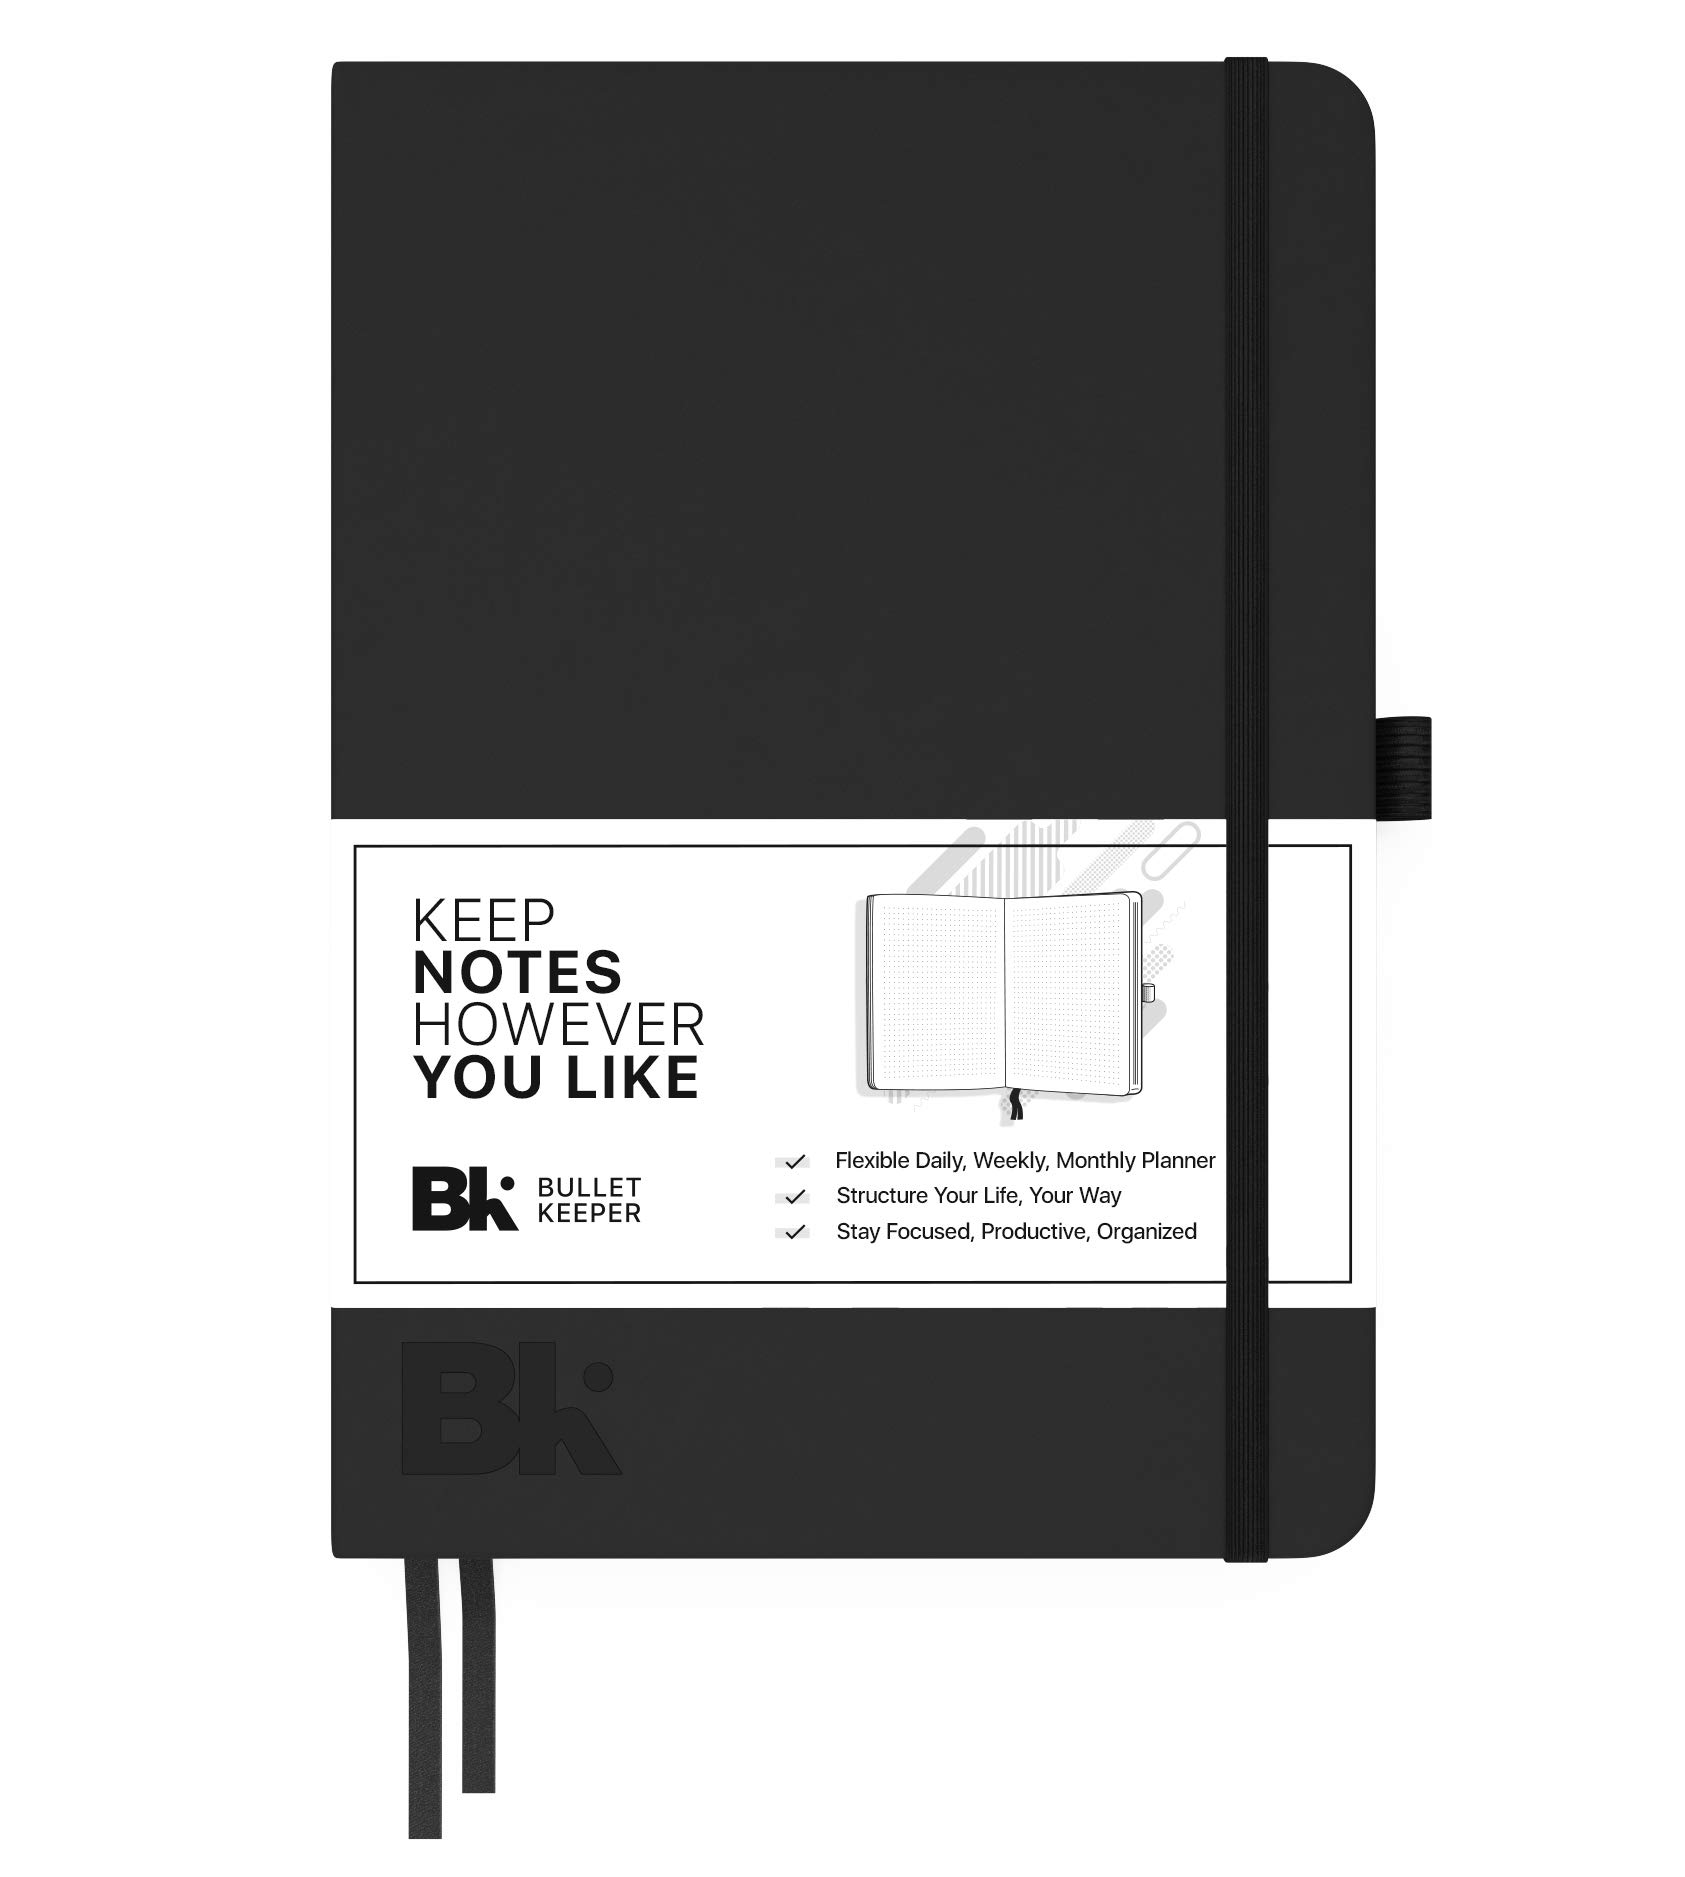 Best Undated Notebook Planner – Daily, Weekly, Monthly Planner. Black Hardcover Leather Bullet Journal. Non-Dated 12 Month Flexible Agenda. 2018-2019 Bullet Keeper